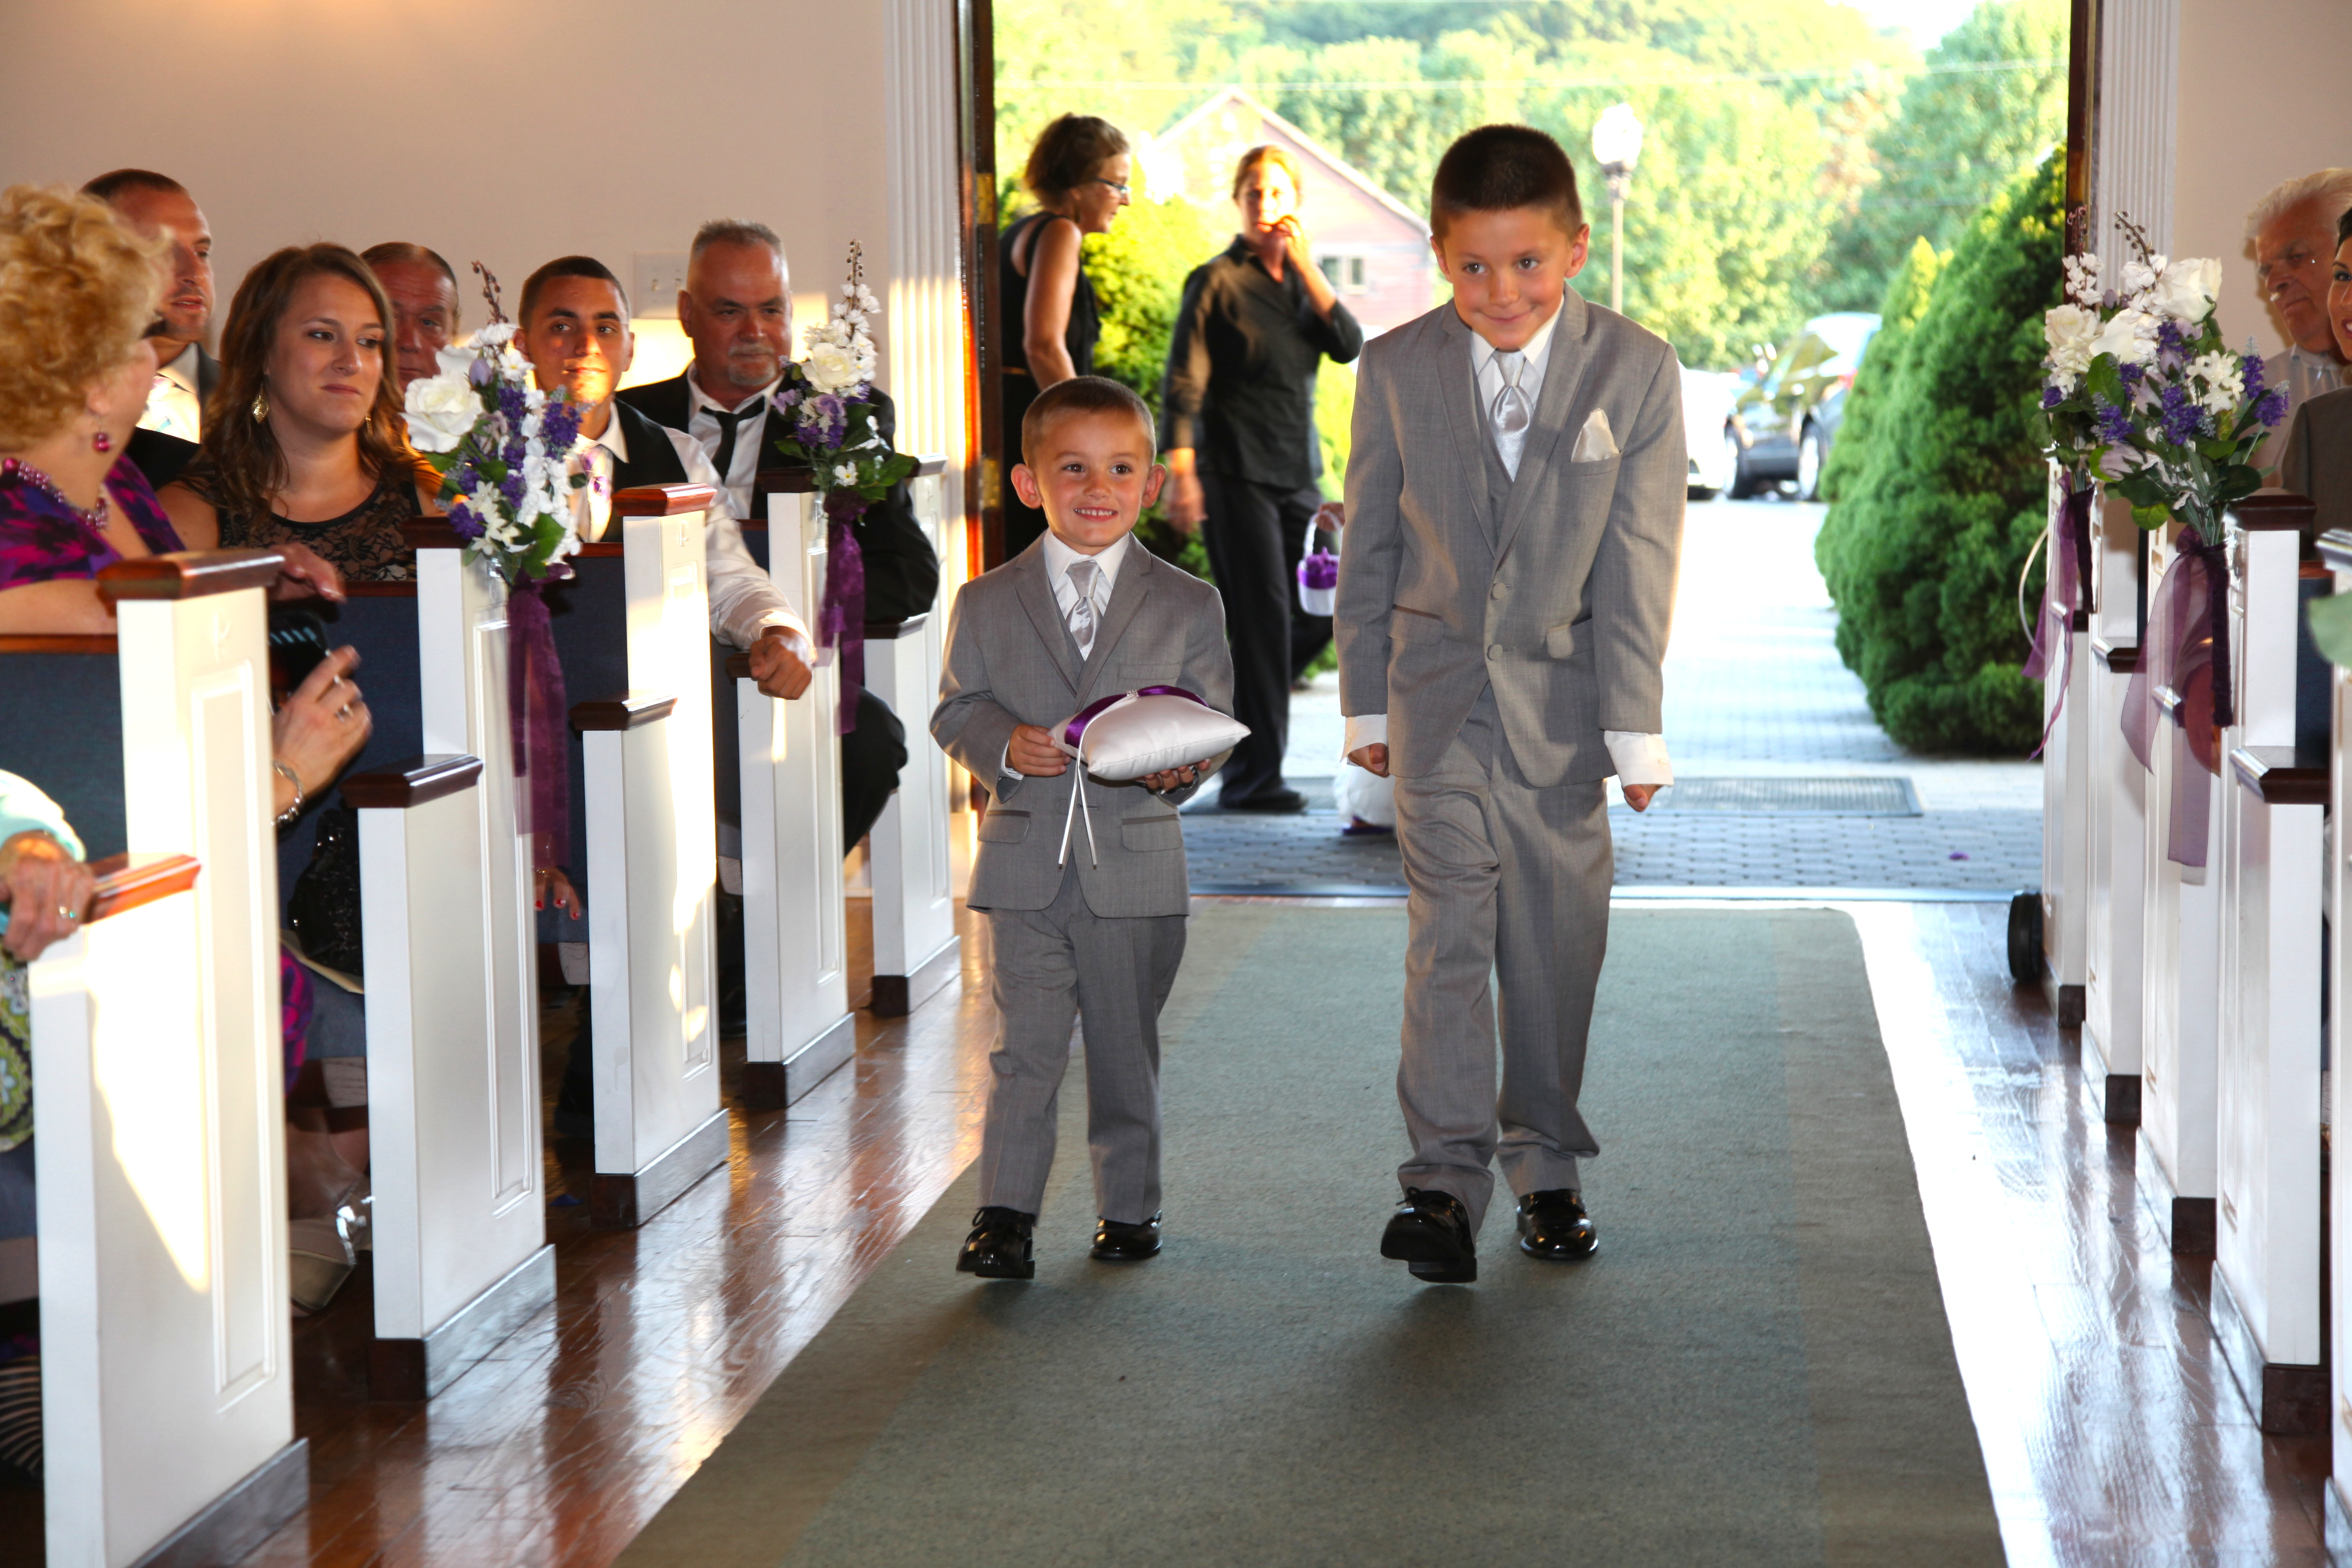 The Ring-bearers